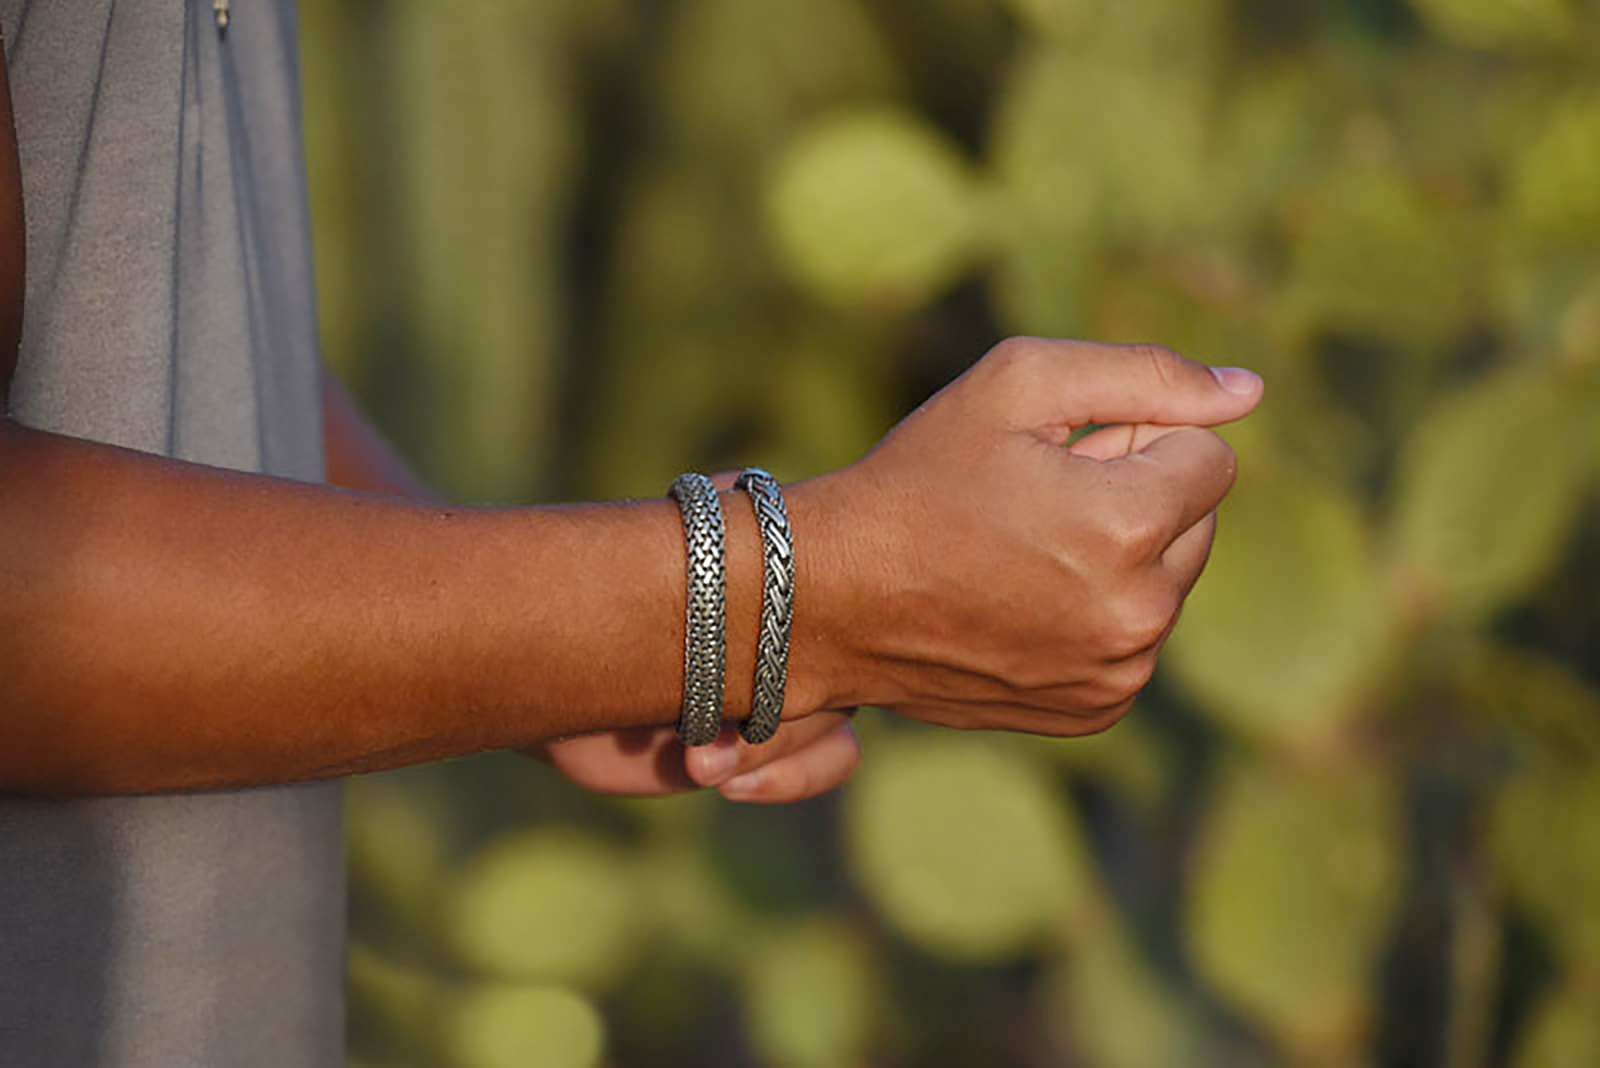 Model in grey t shirt touching bali bracelets